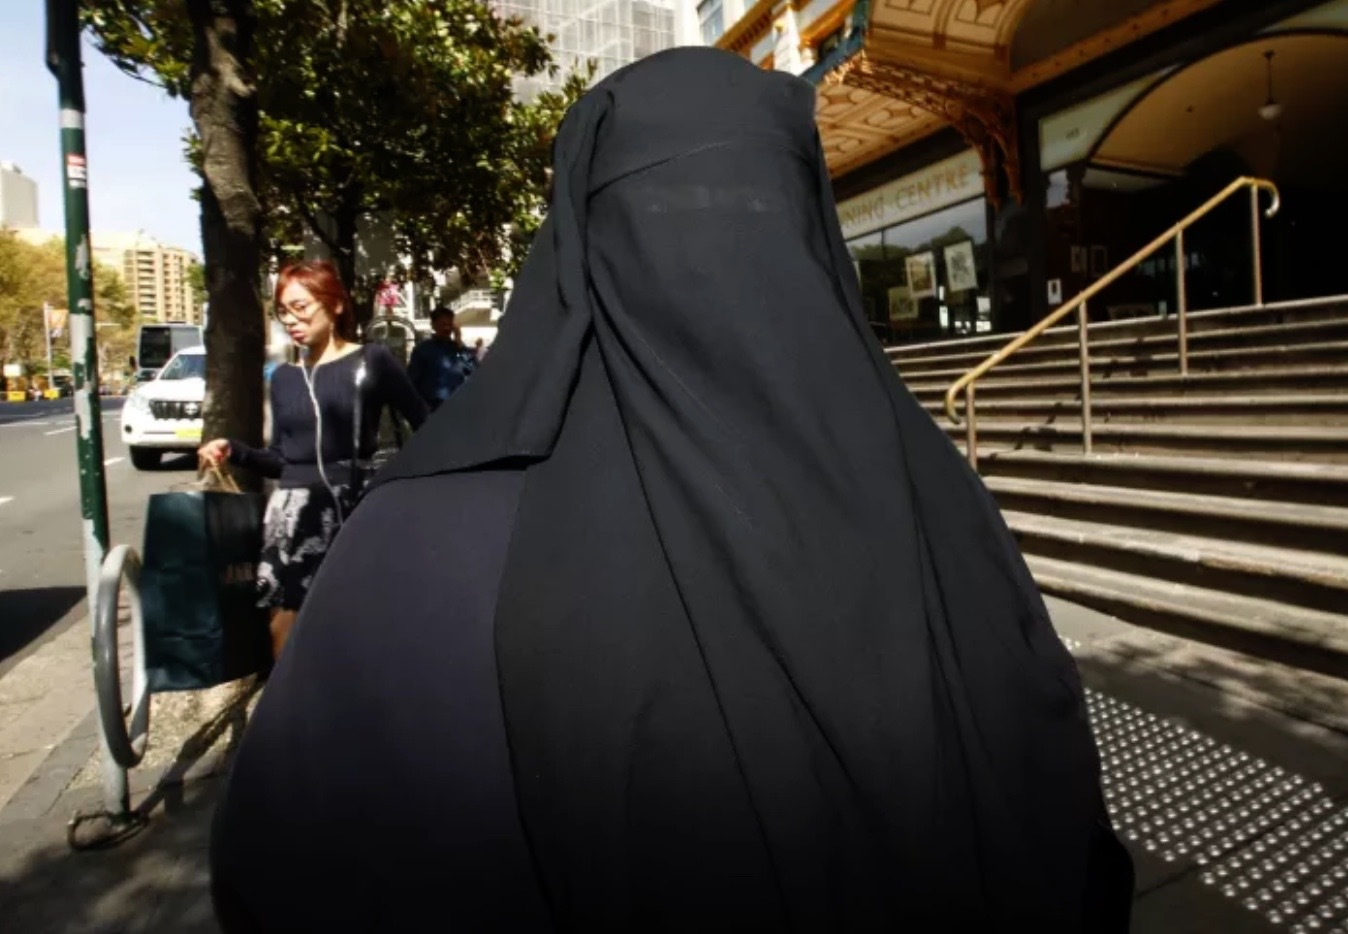 This Muslim Woman Was Barred From Testifying In Court With Her Niqab On. Now She's Appealing Her Court Loss.